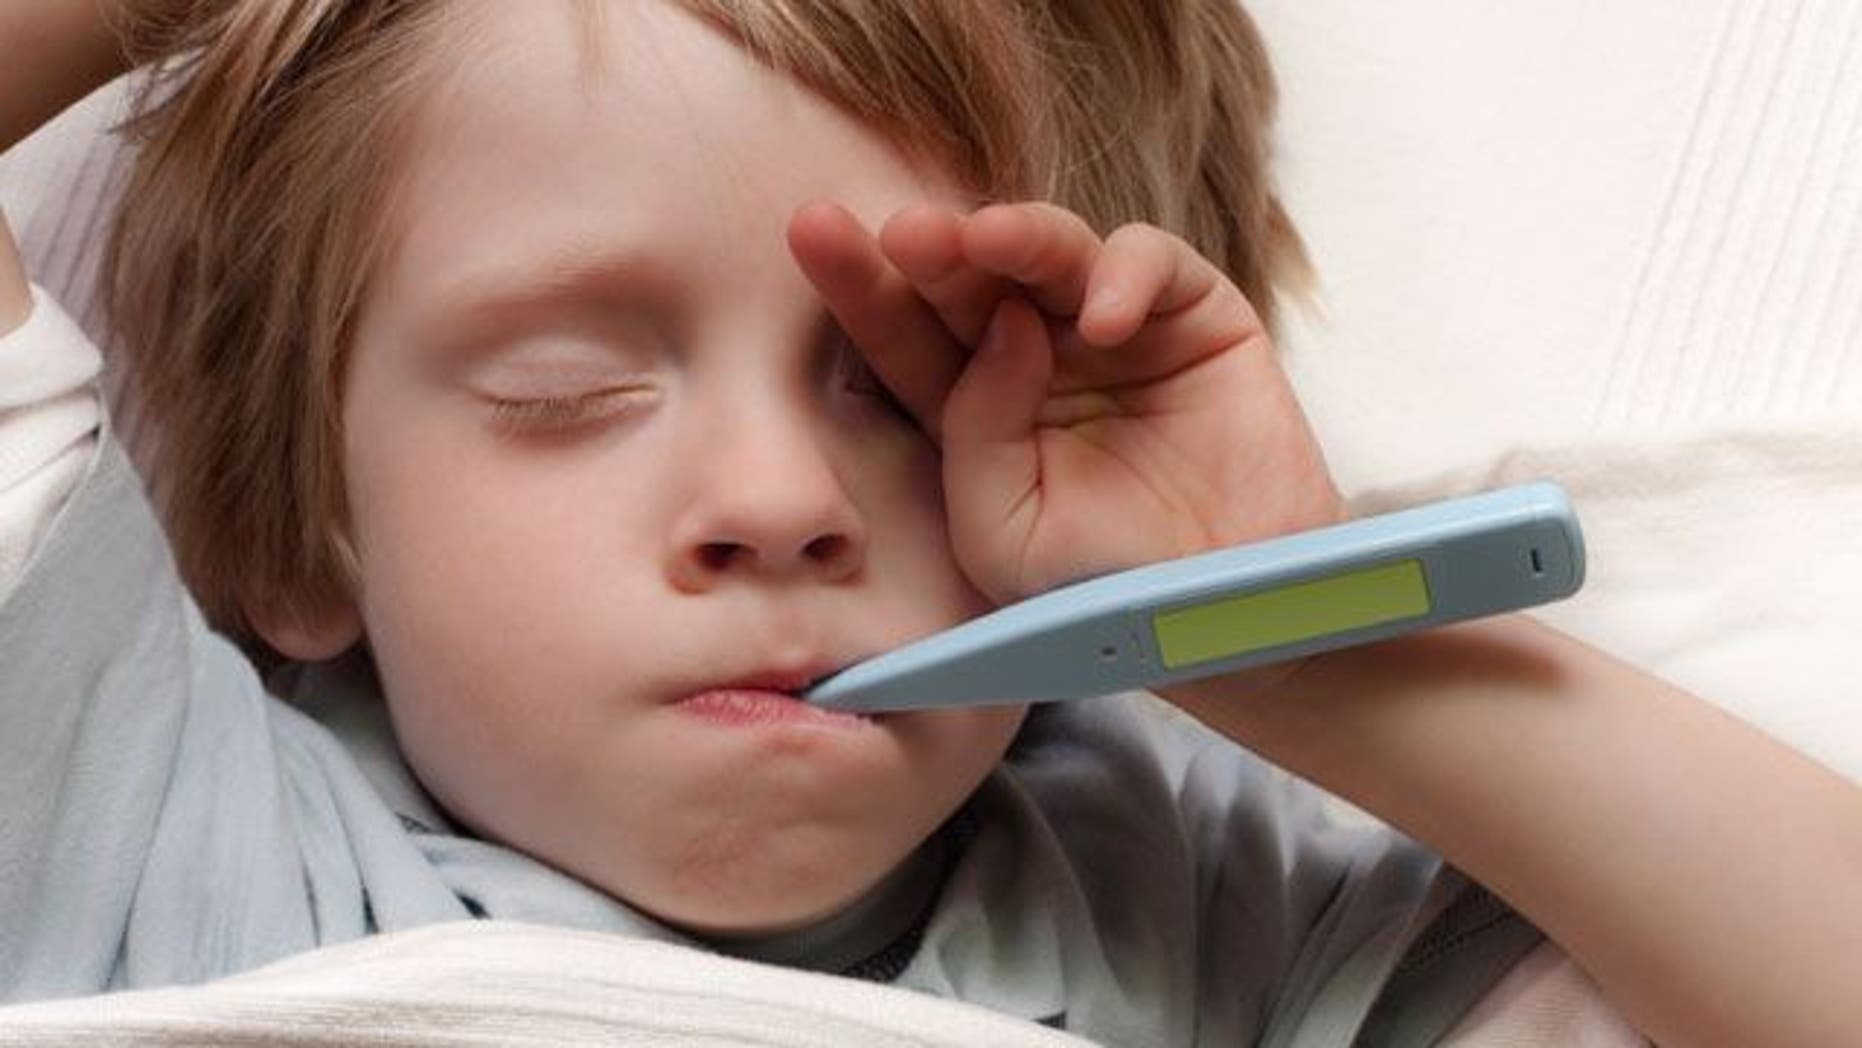 Communication on this topic: Kids and H1N1 Vaccine, kids-and-h1n1-vaccine/